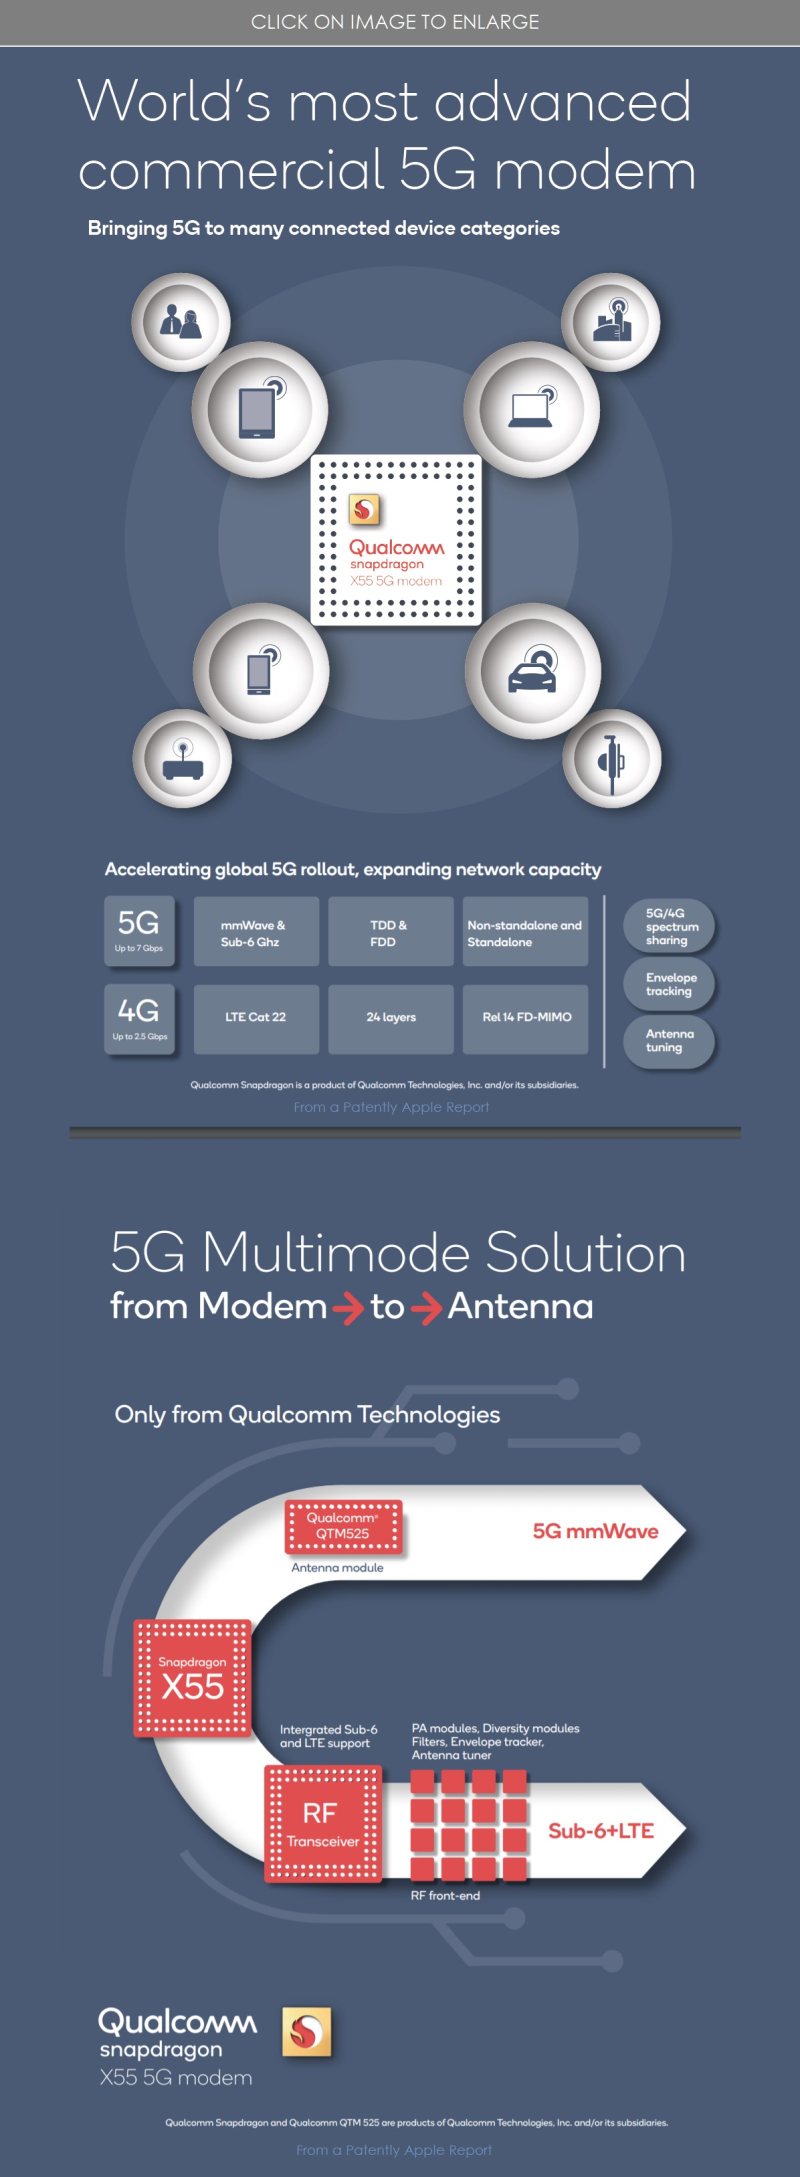 3 Qualcomm X55 5G Modem infographic